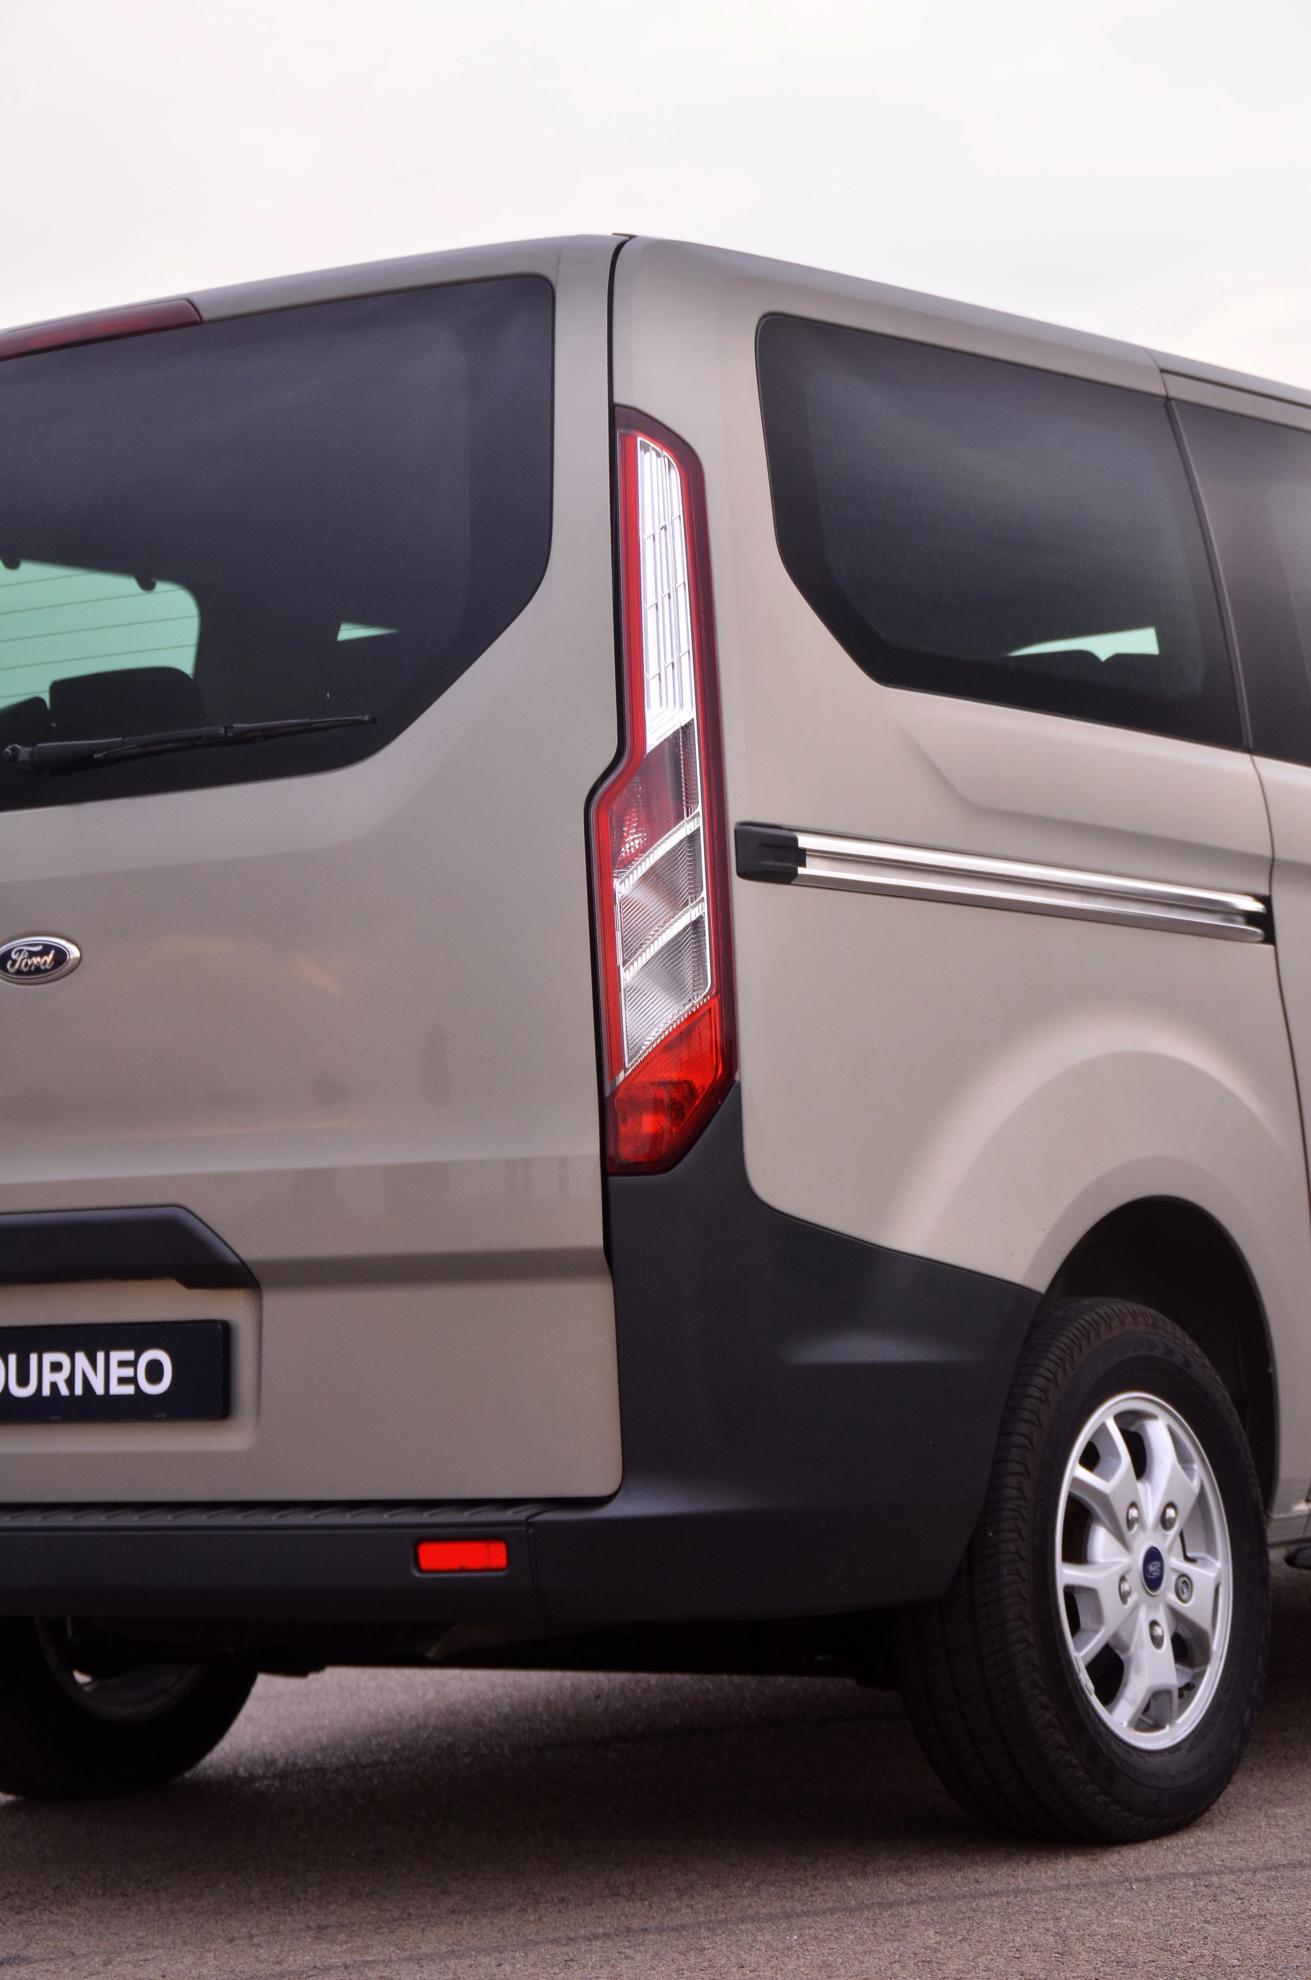 Ford Tourneo 2013 Rear Lights